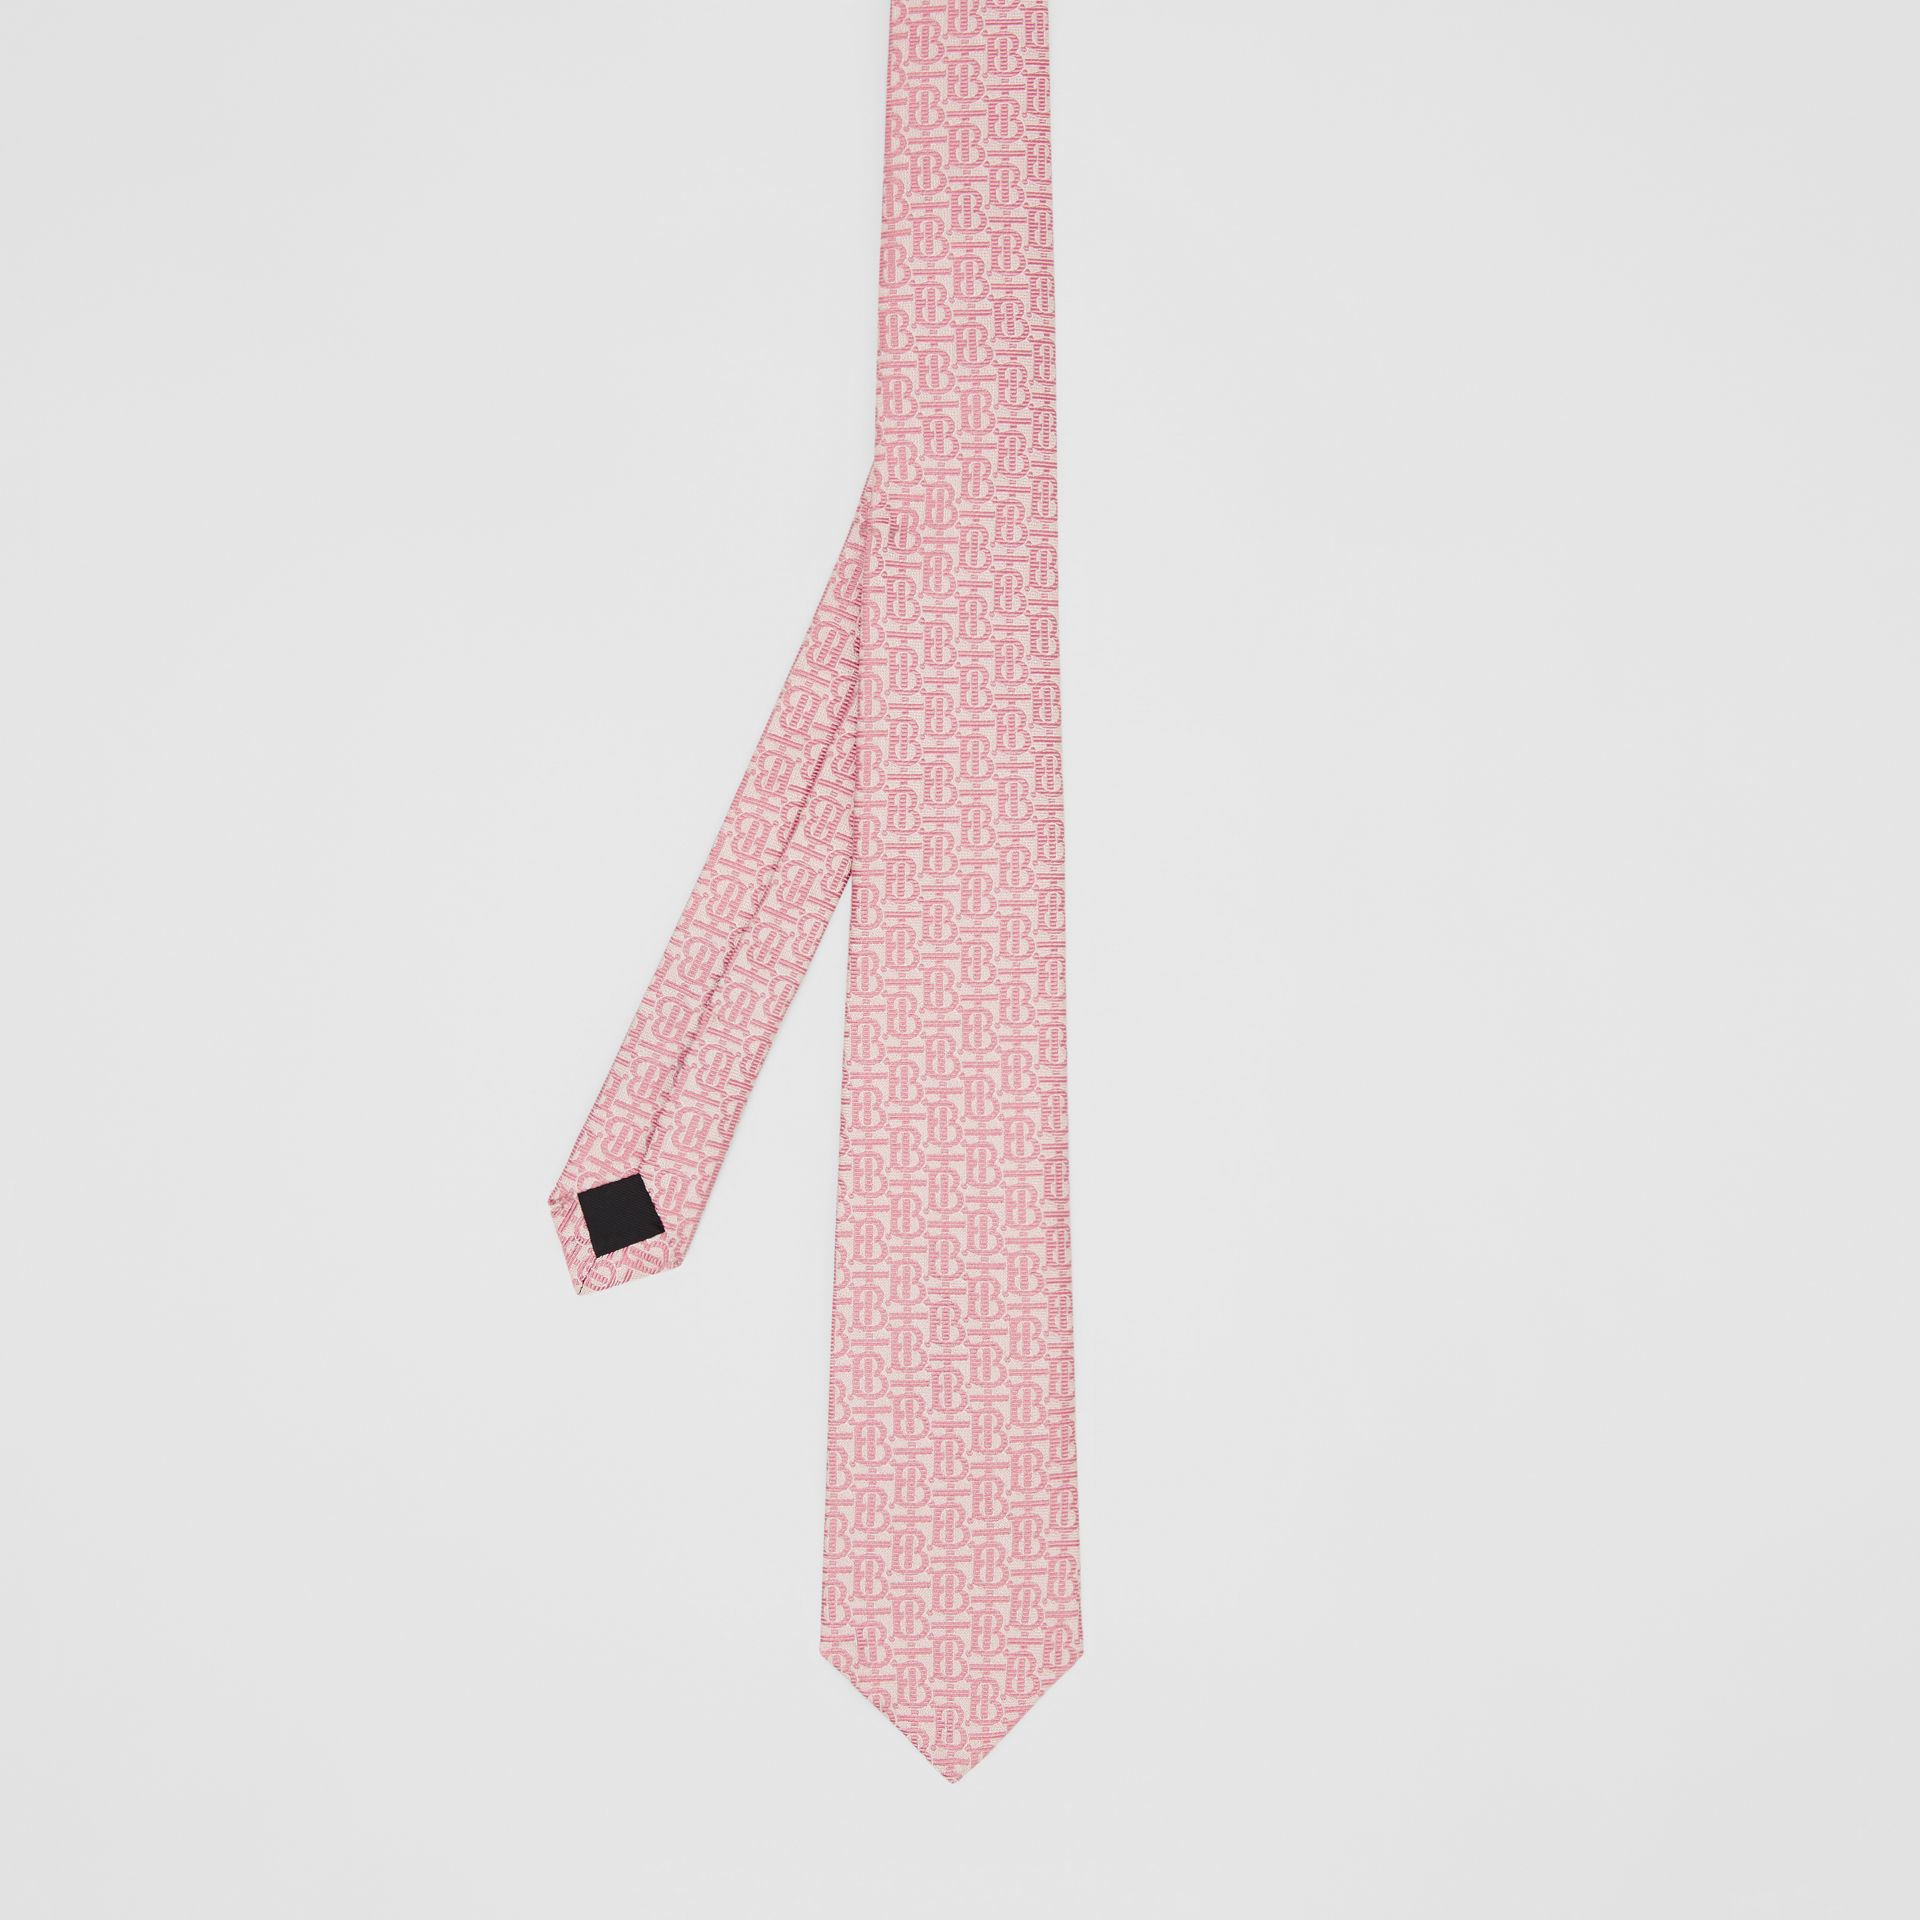 Classic Cut Monogram Silk Jacquard Tie in Alabaster Pink - Men | Burberry - gallery image 4